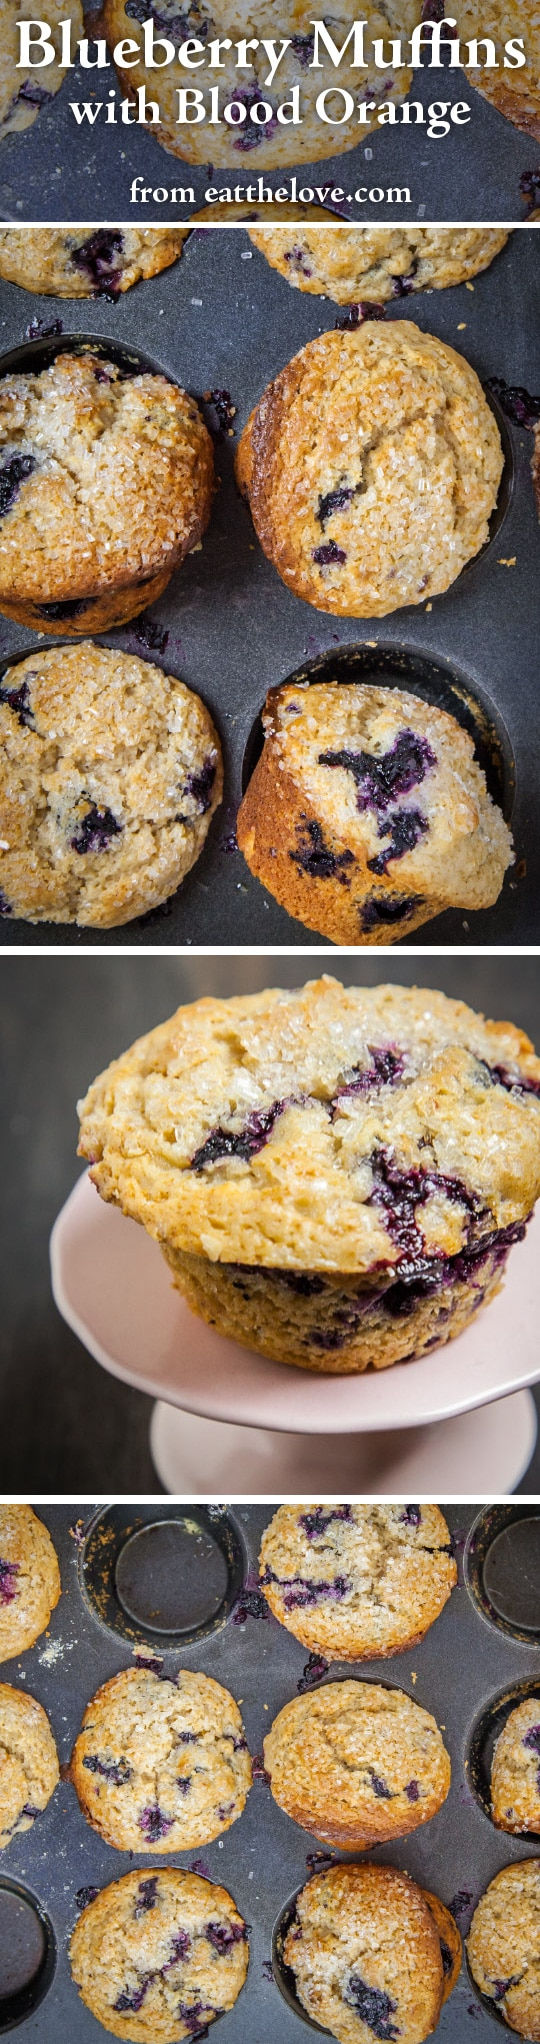 Blueberry Muffins Recipe | Homemade Blueberry Muffins | Eat the Love